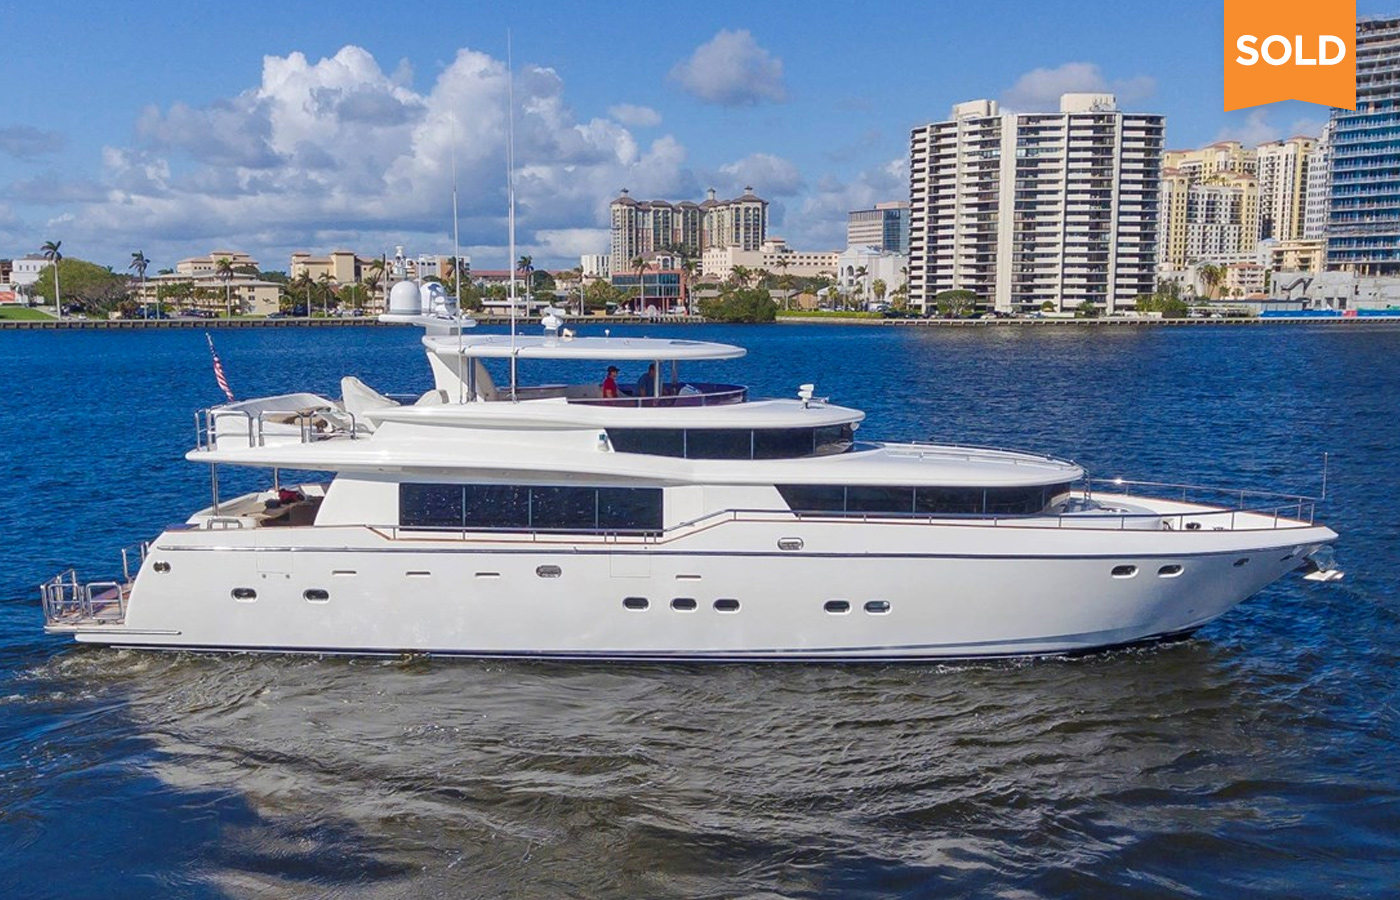 87 Johnson 4 Mal Yacht Sold By Sidney Ambroise